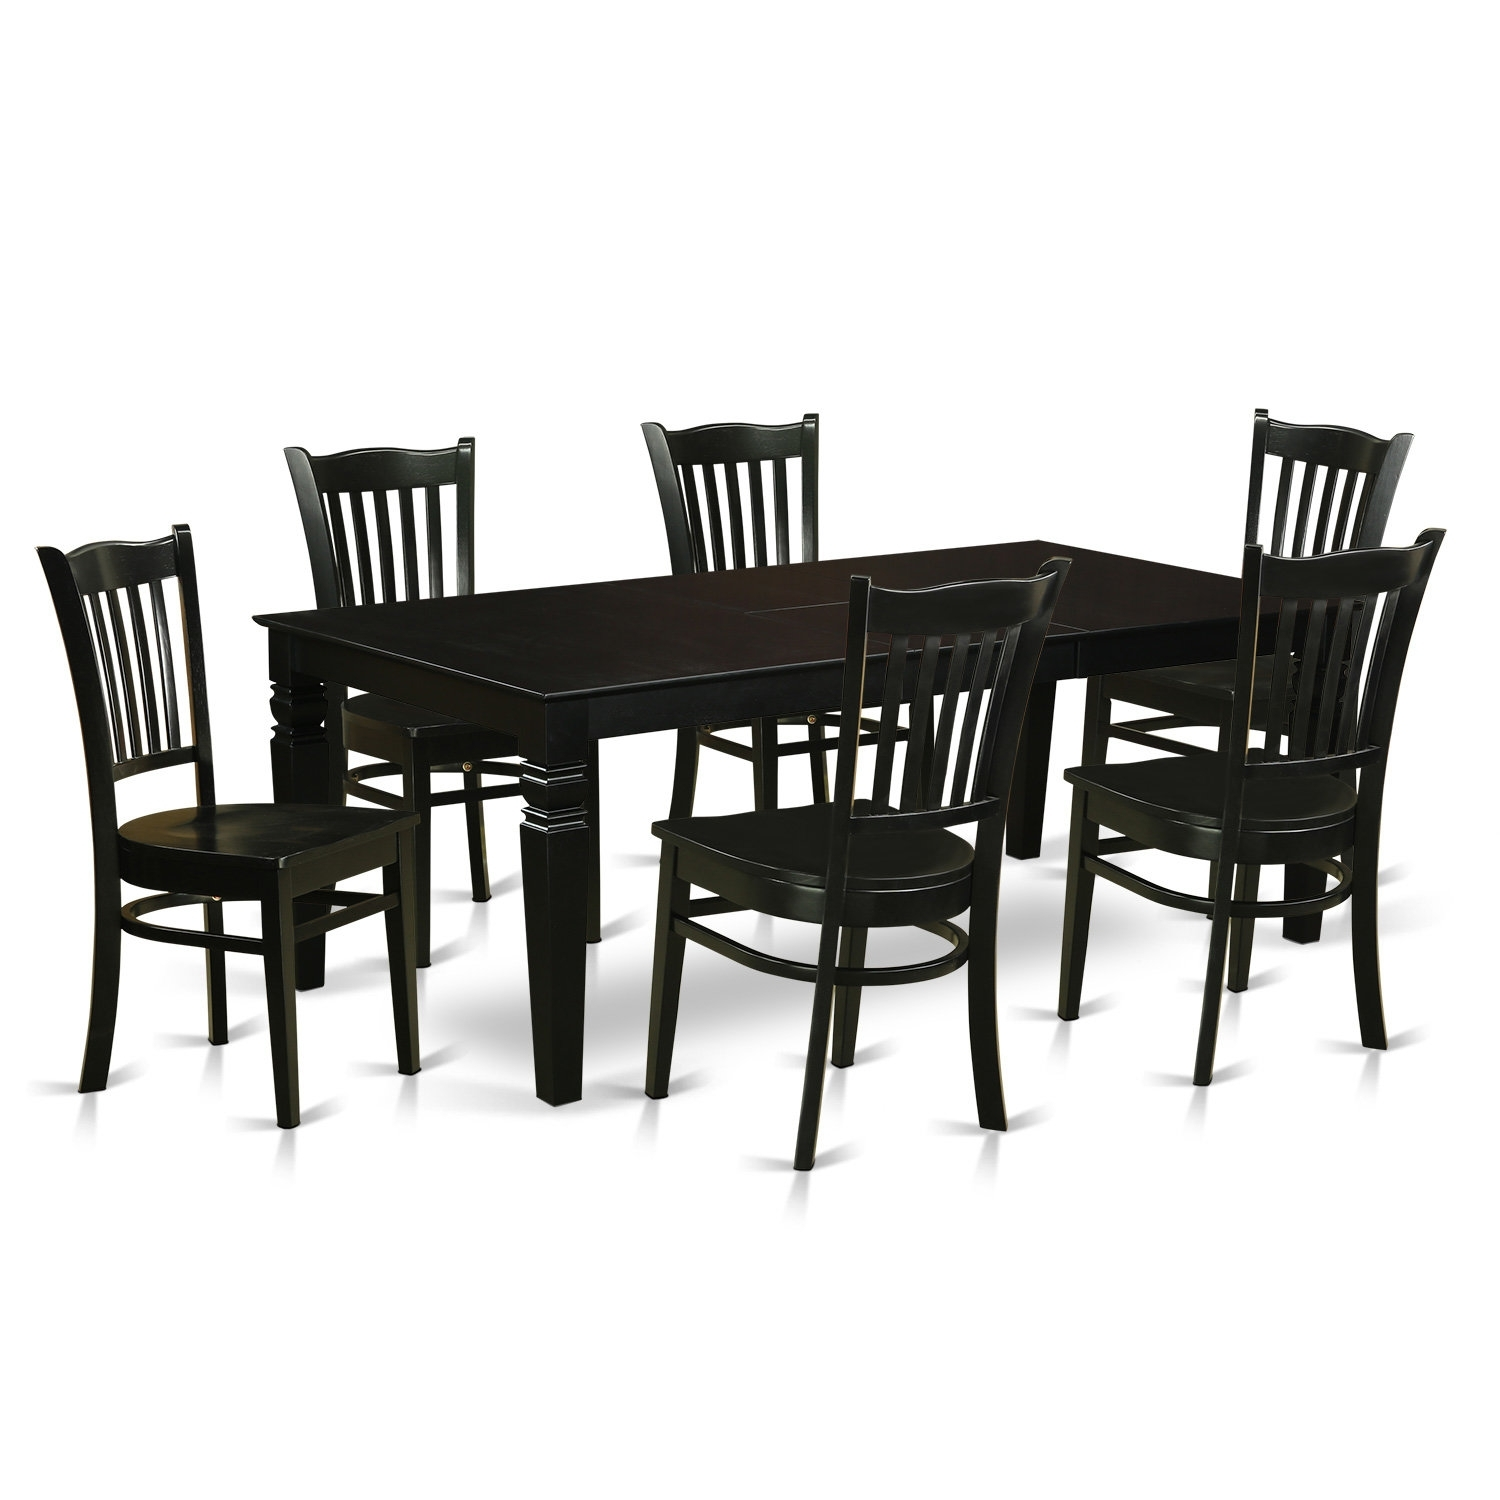 Darby Home Co Beldin 7 Piece Dining Set | Wayfair Within Current Candice Ii 7 Piece Extension Rectangular Dining Sets With Uph Side Chairs (Image 11 of 20)